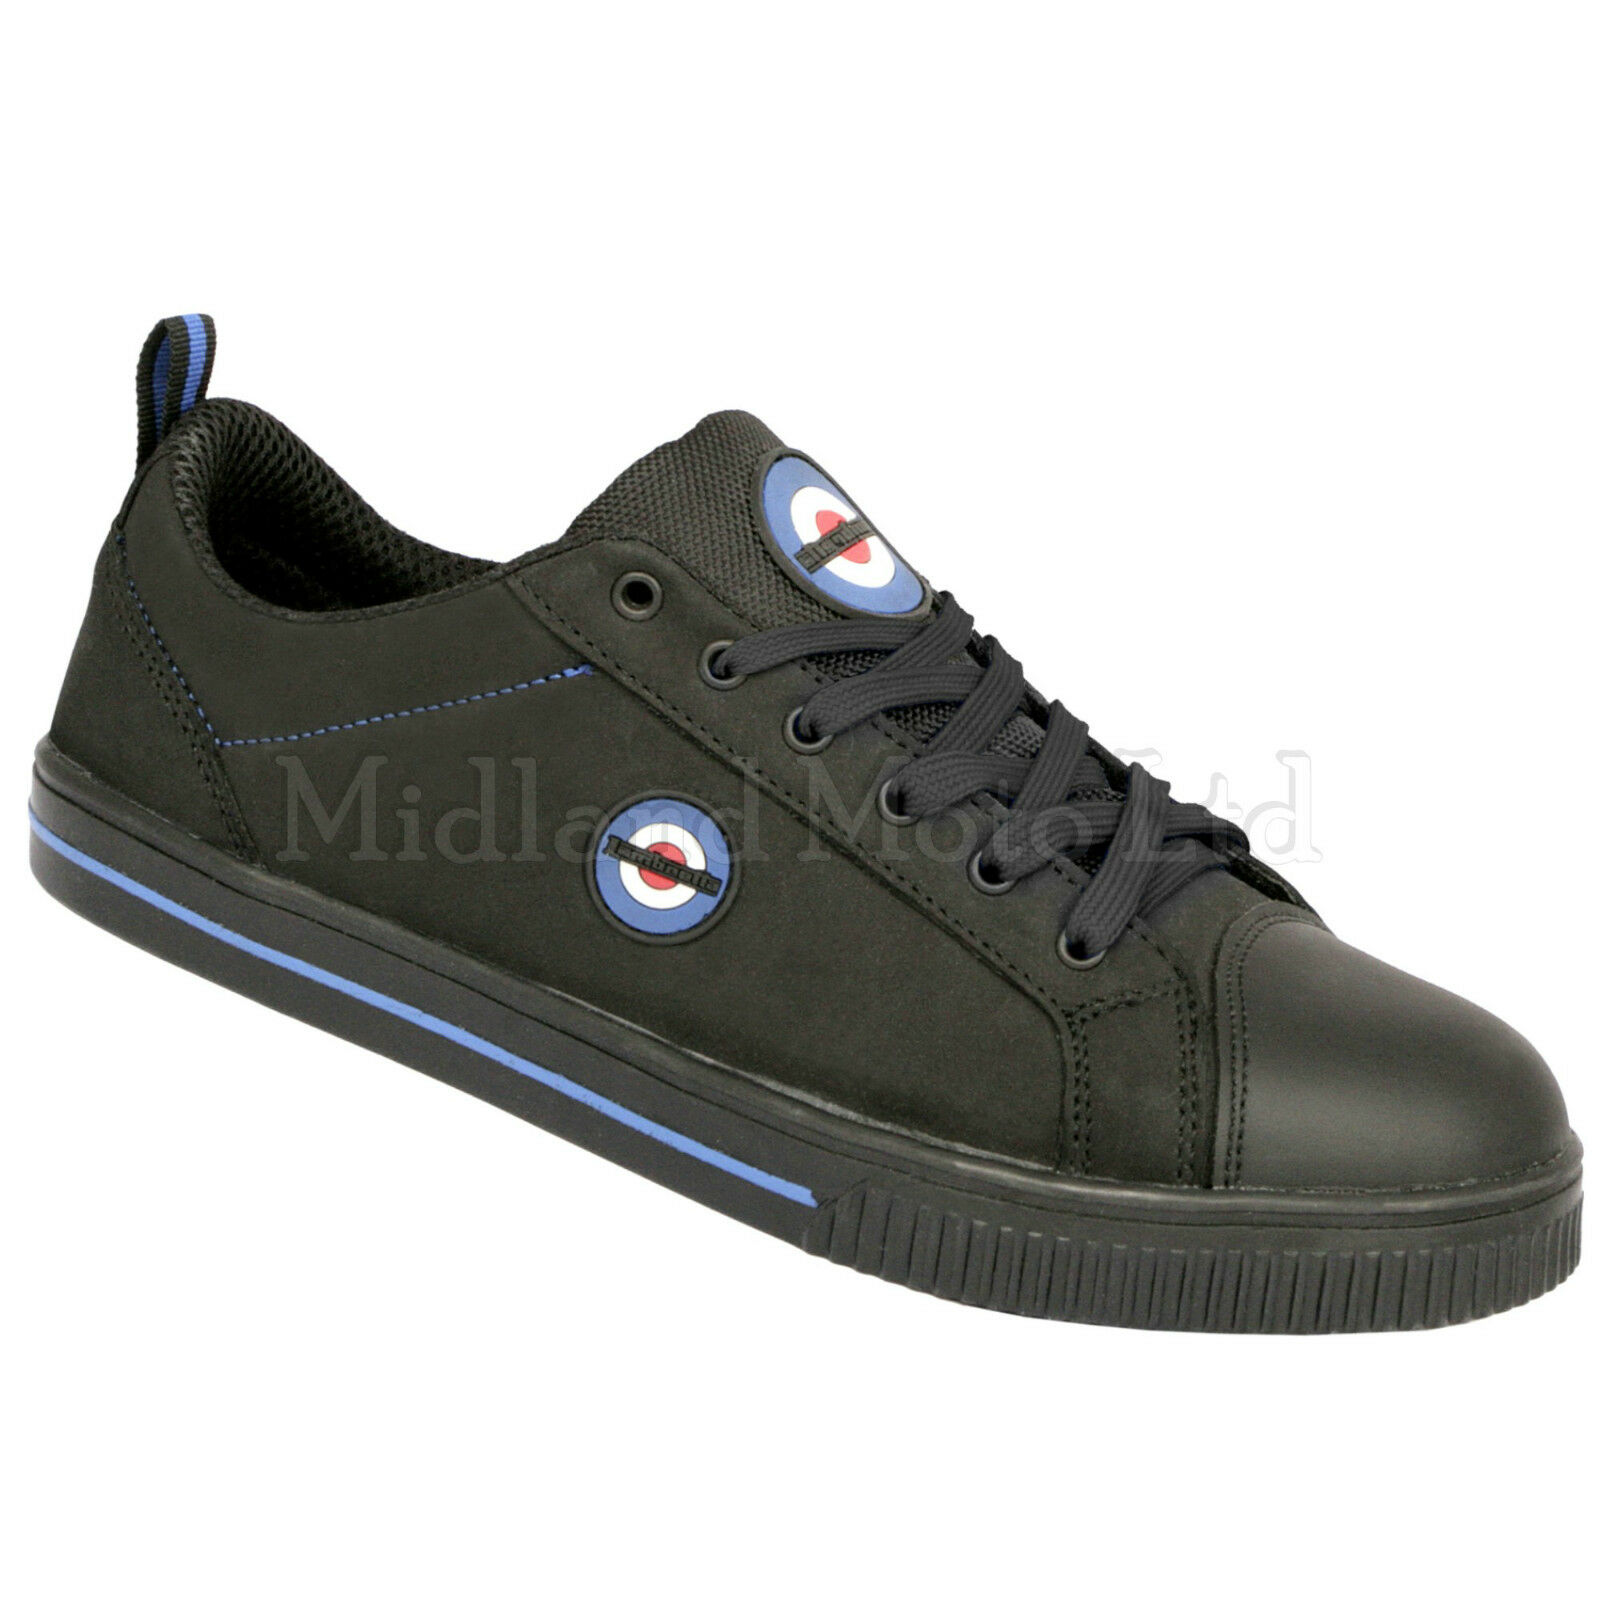 Lambretta Safety Steel Toe Cap Plimsoll Skater Style Shoe. Trainers Pumps. DB002